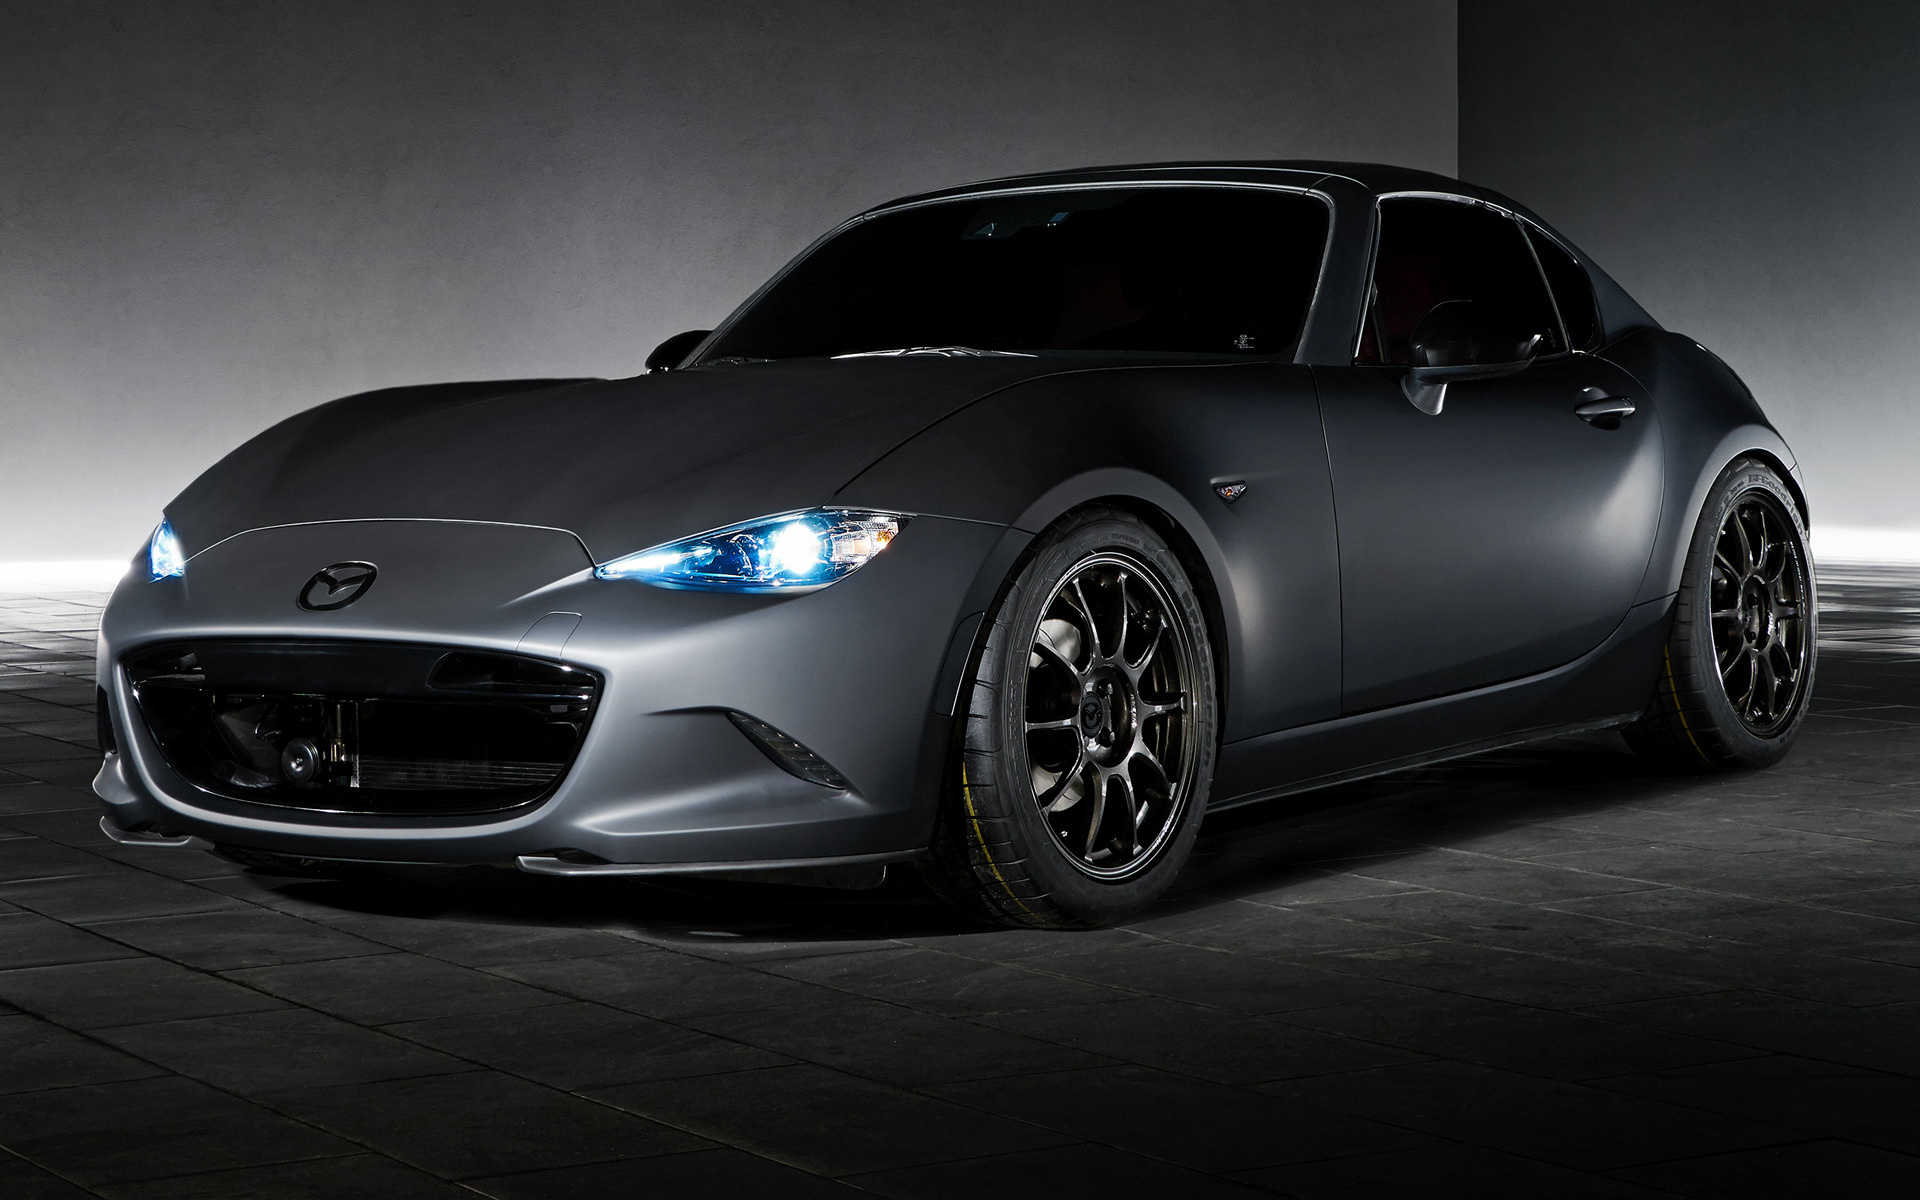 2016 Mazda Mx 5 Miata Rf Kuro Concept Wallpapers And Hd